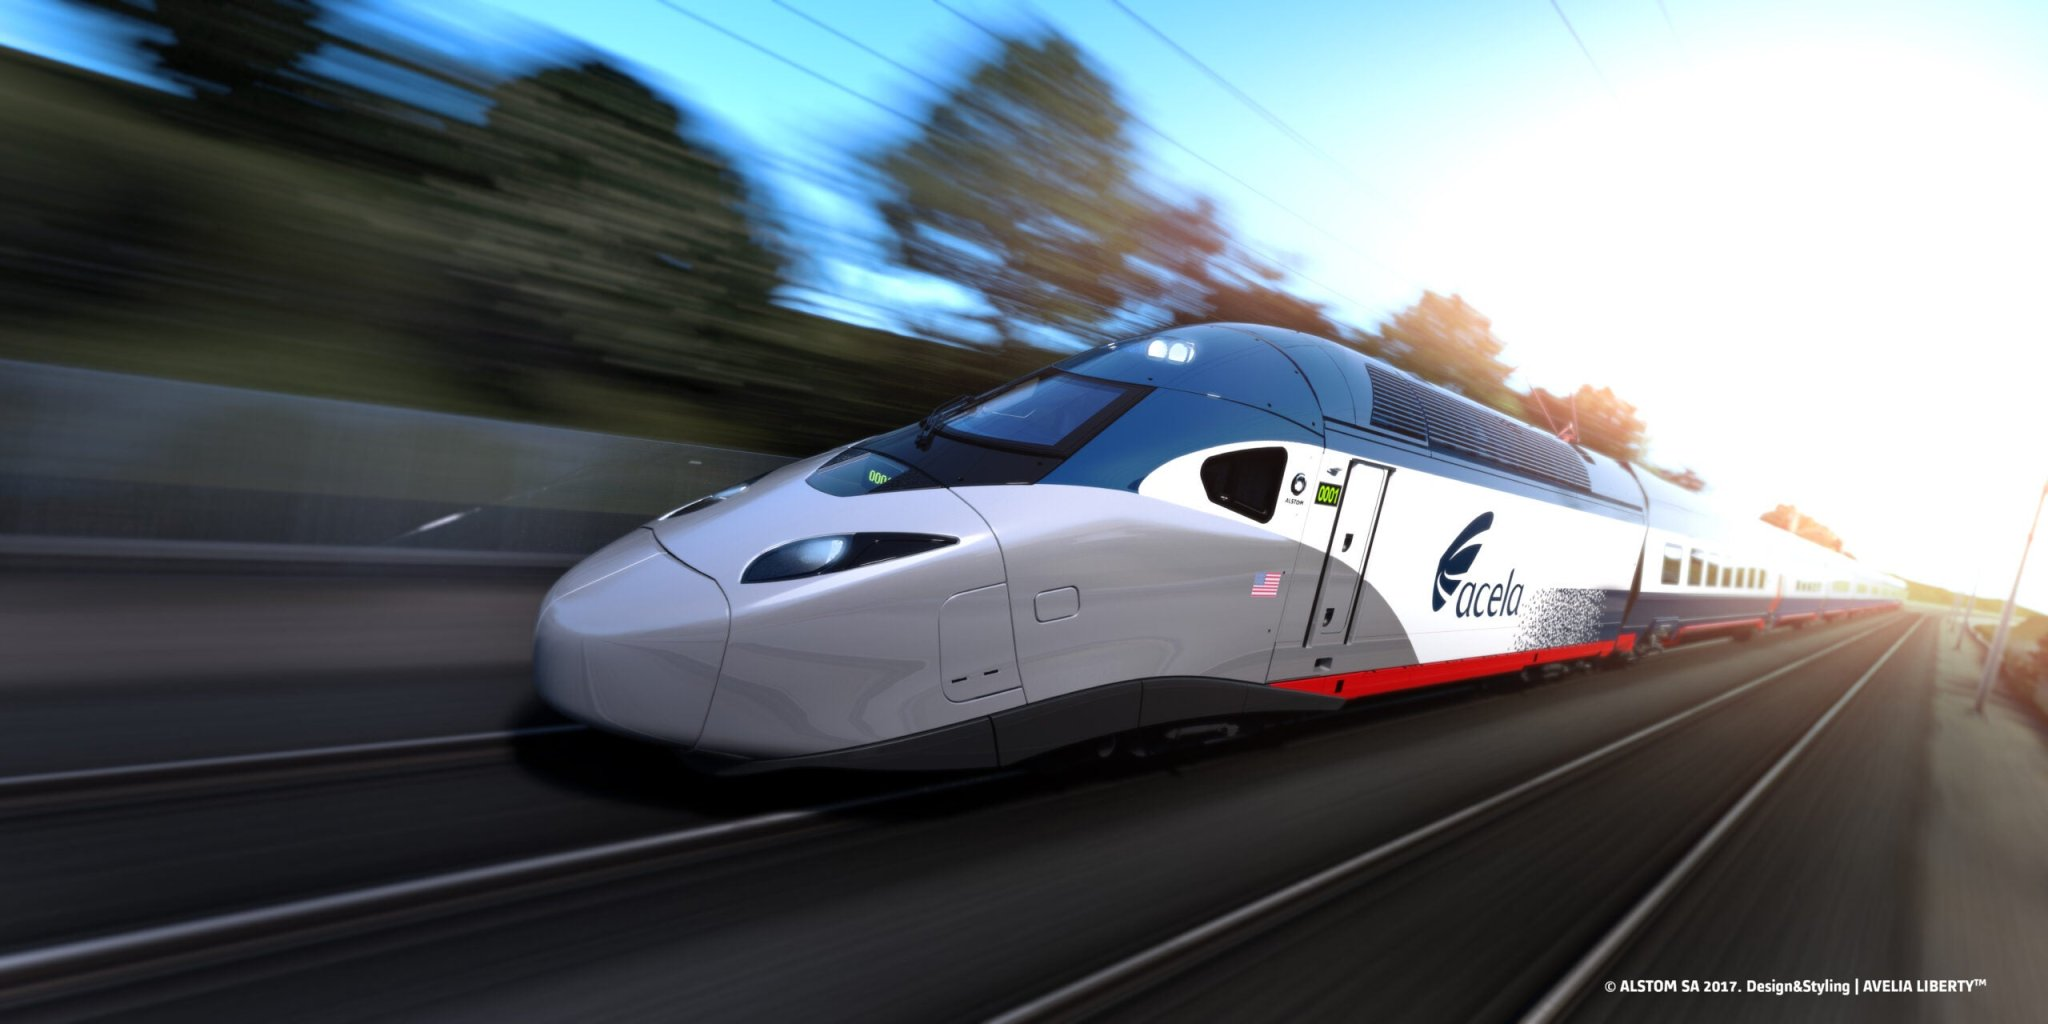 Bullet trains are finally coming to America (And We Couldn't Be More Excited)